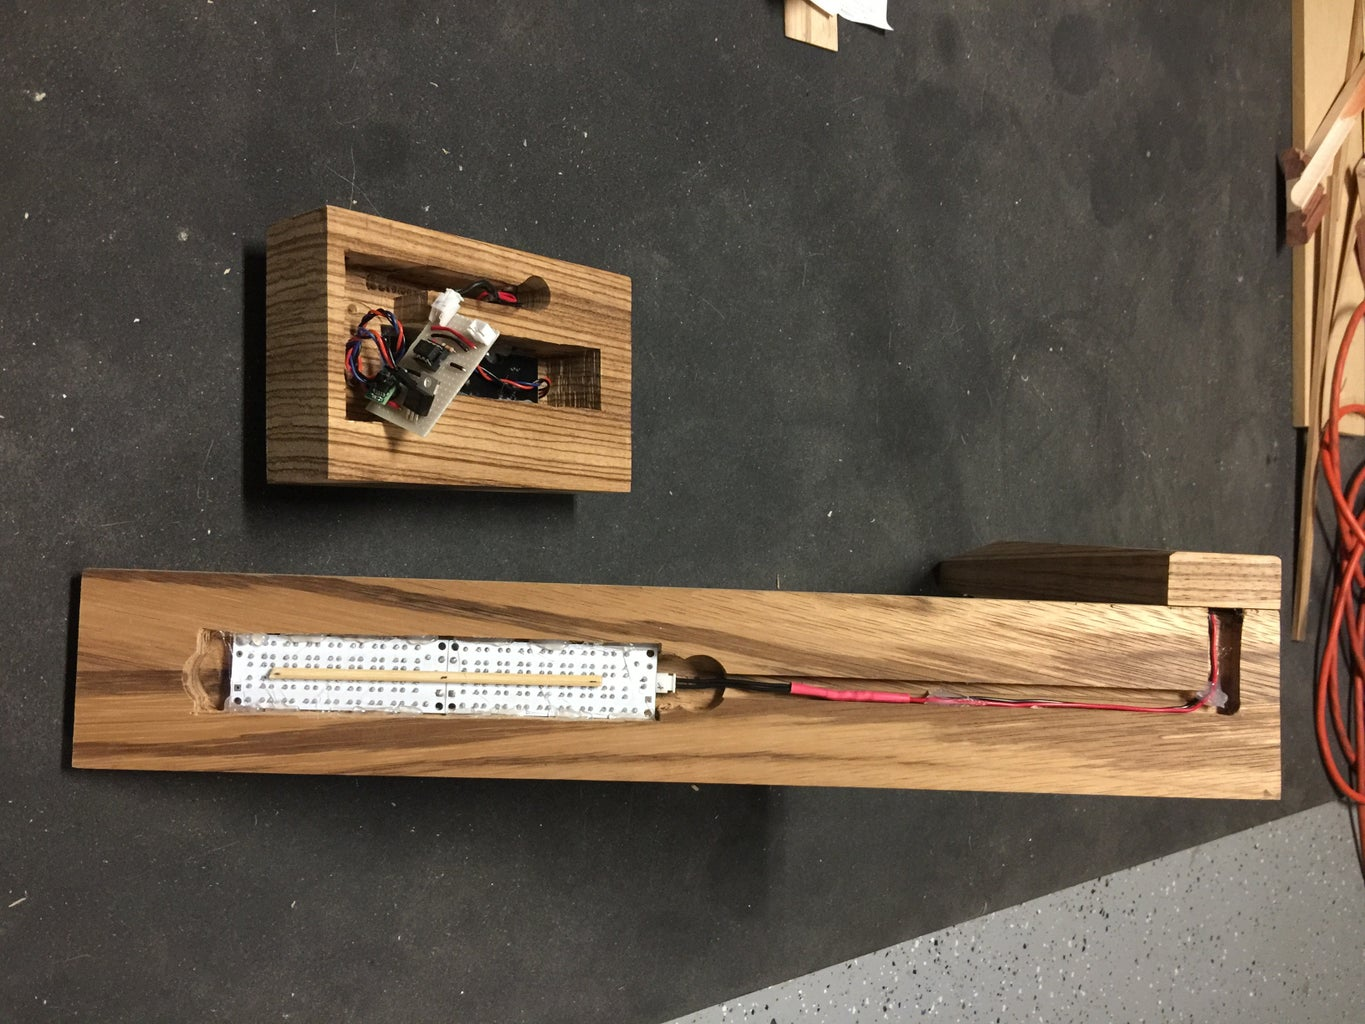 The Lamp - Adding the Electronics